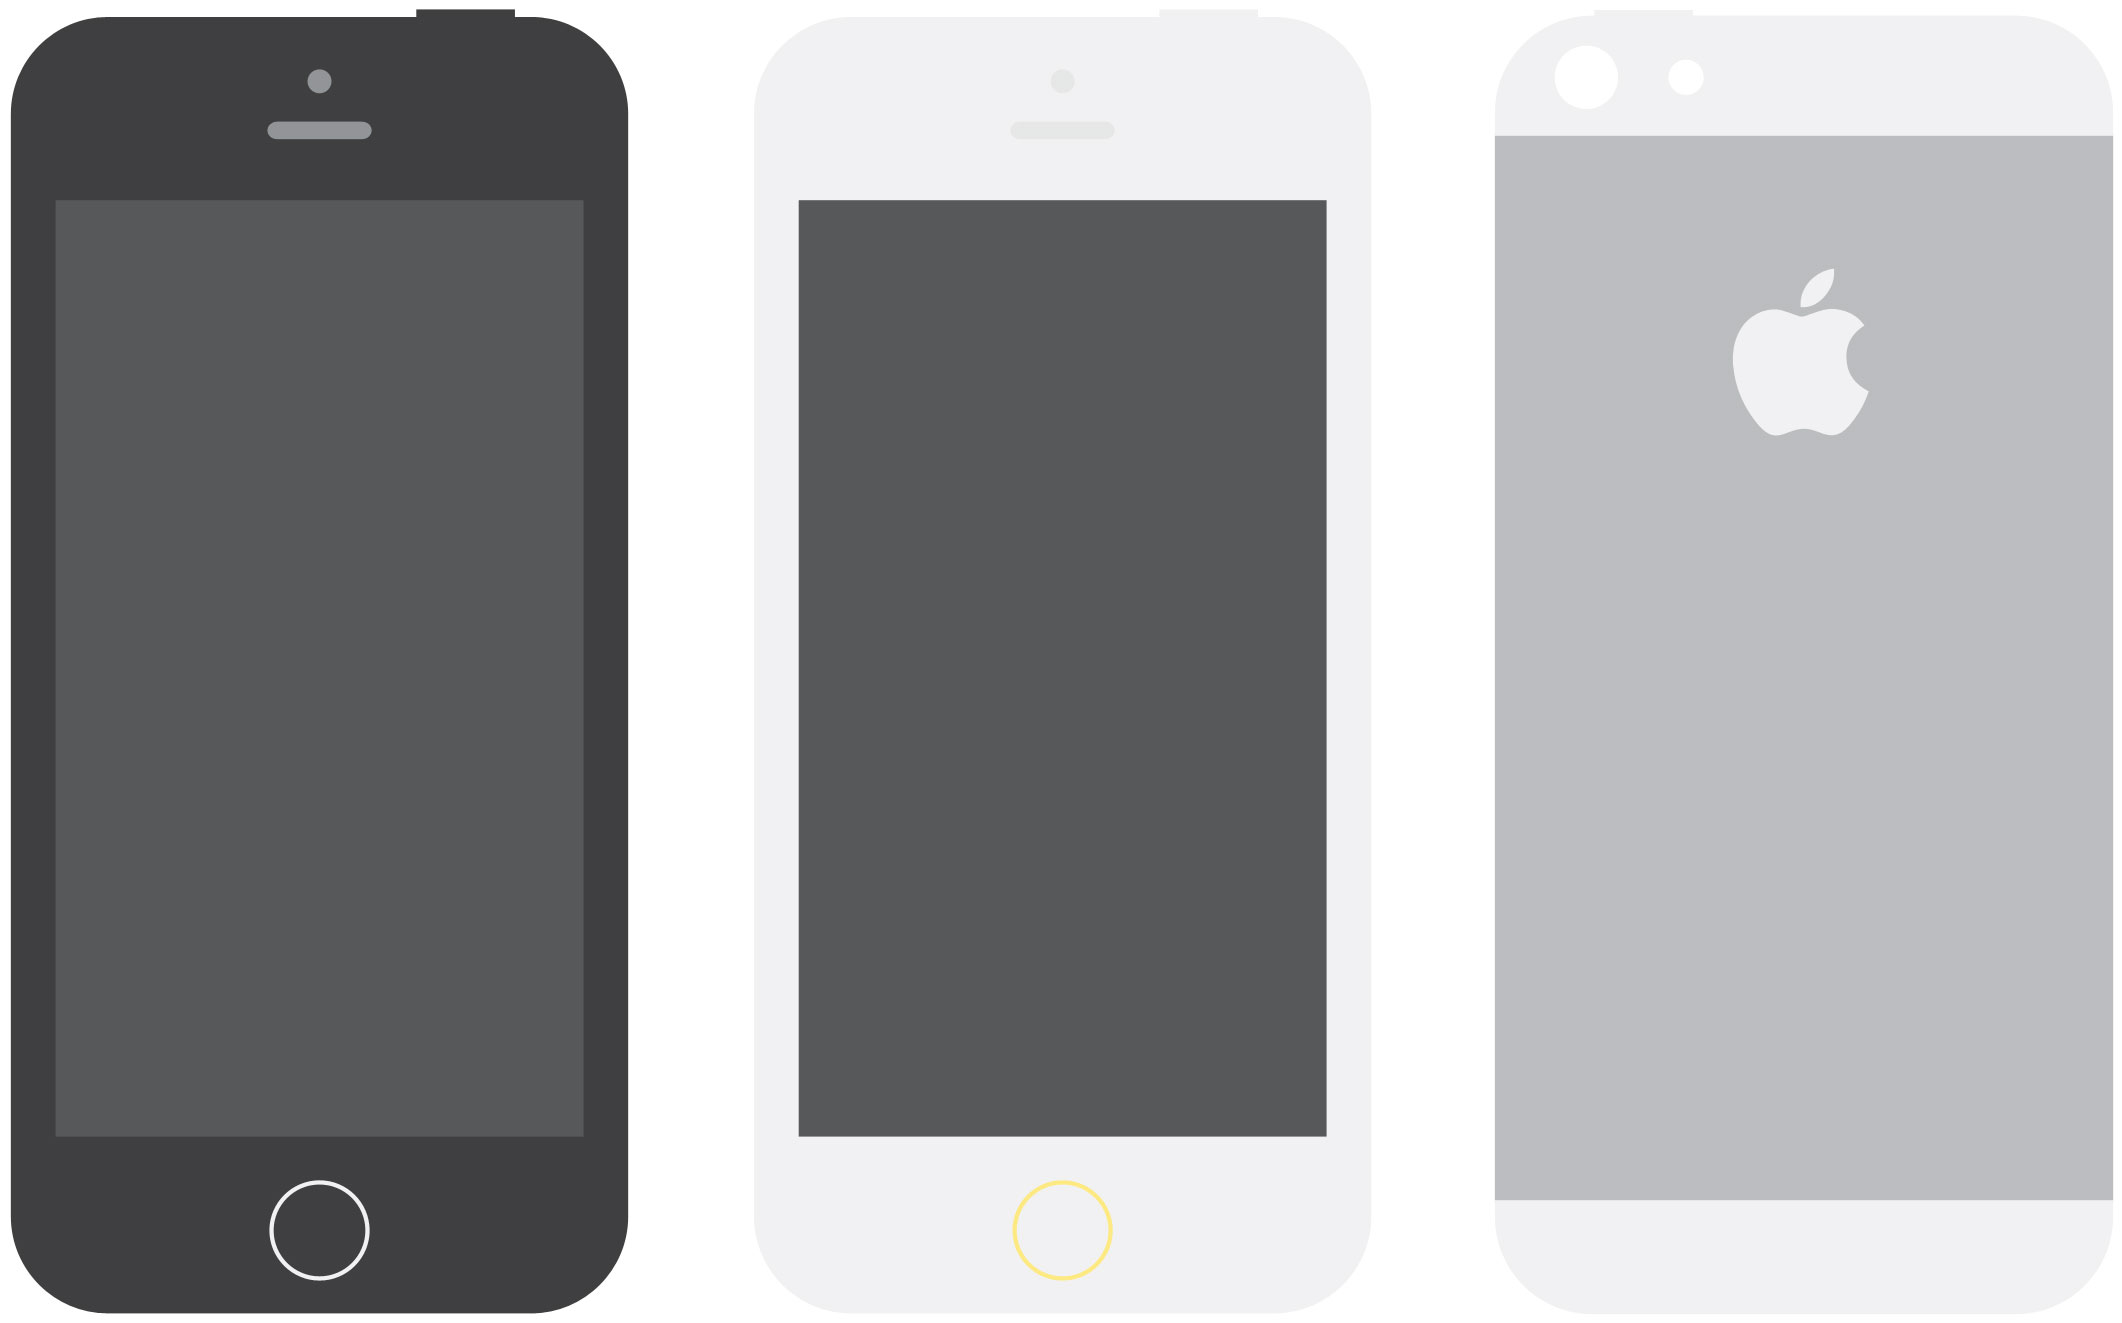 Apple iPhone 5S Flat Design Mockups - PSD Mockups